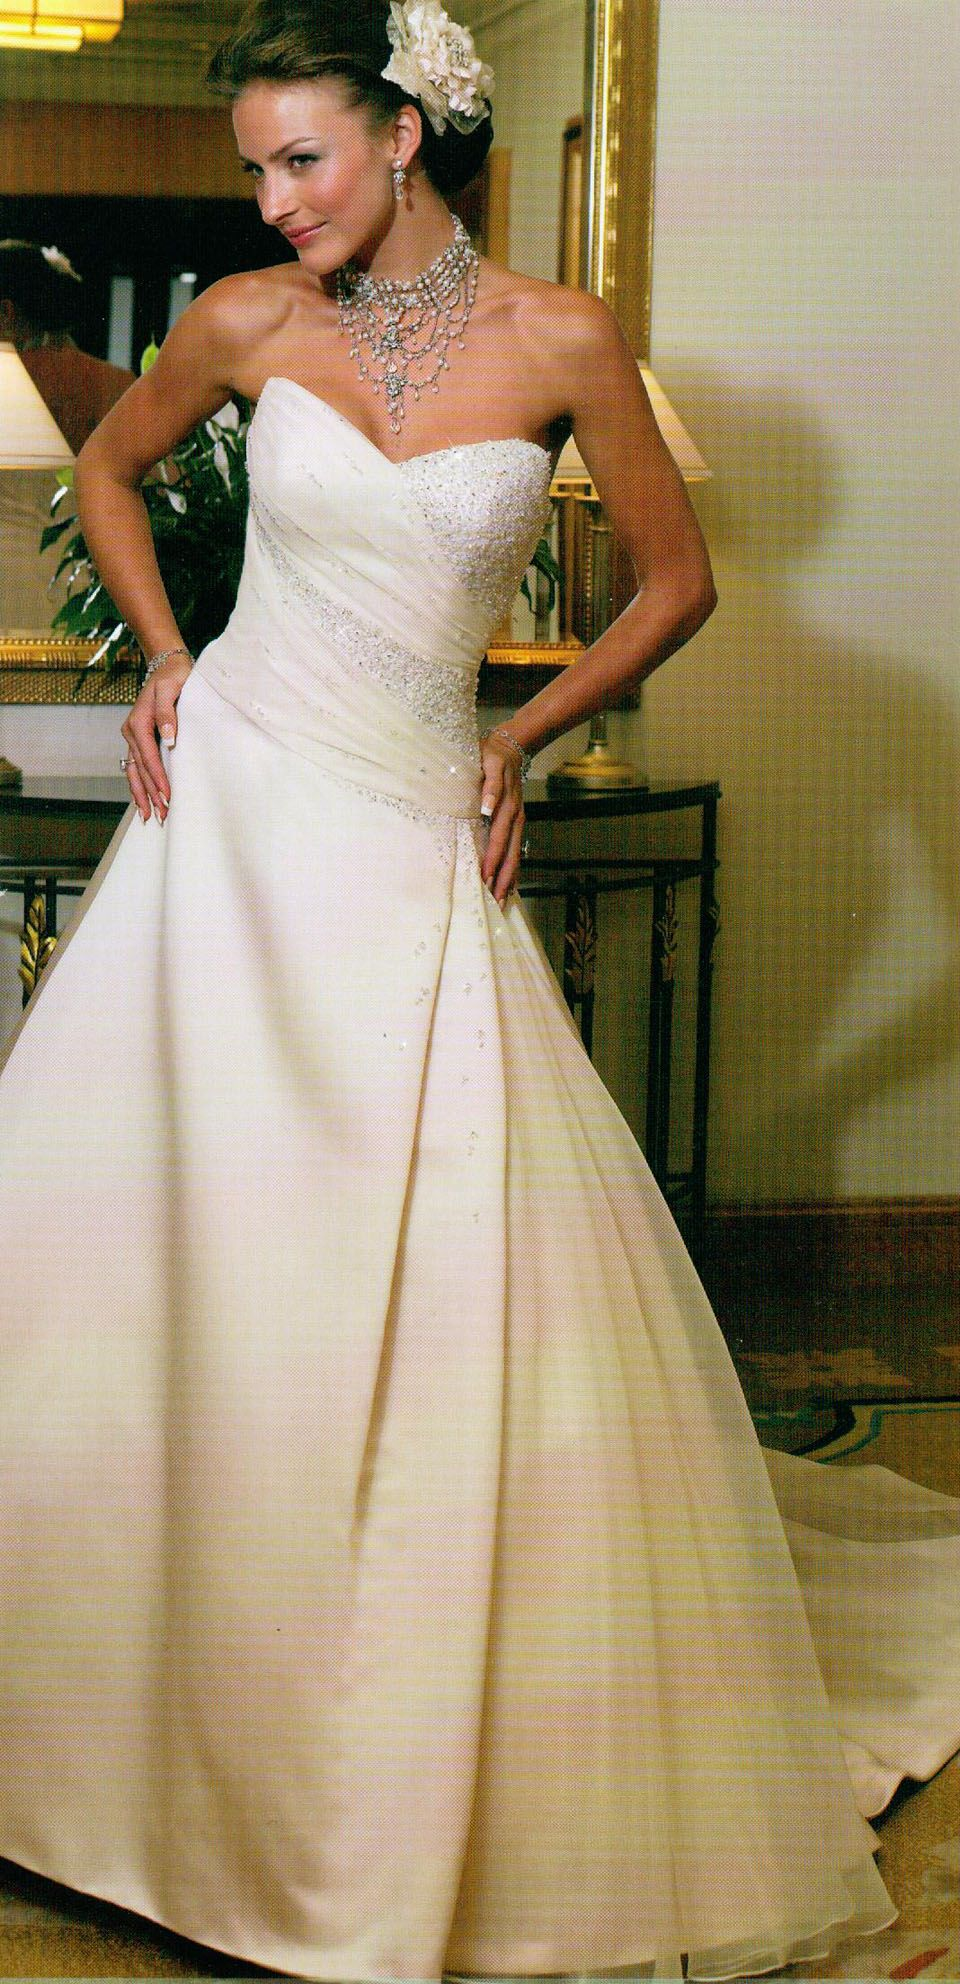 Wedding Gown Rental Las Vegas Nv | Cocktail Dresses | Pinterest ...